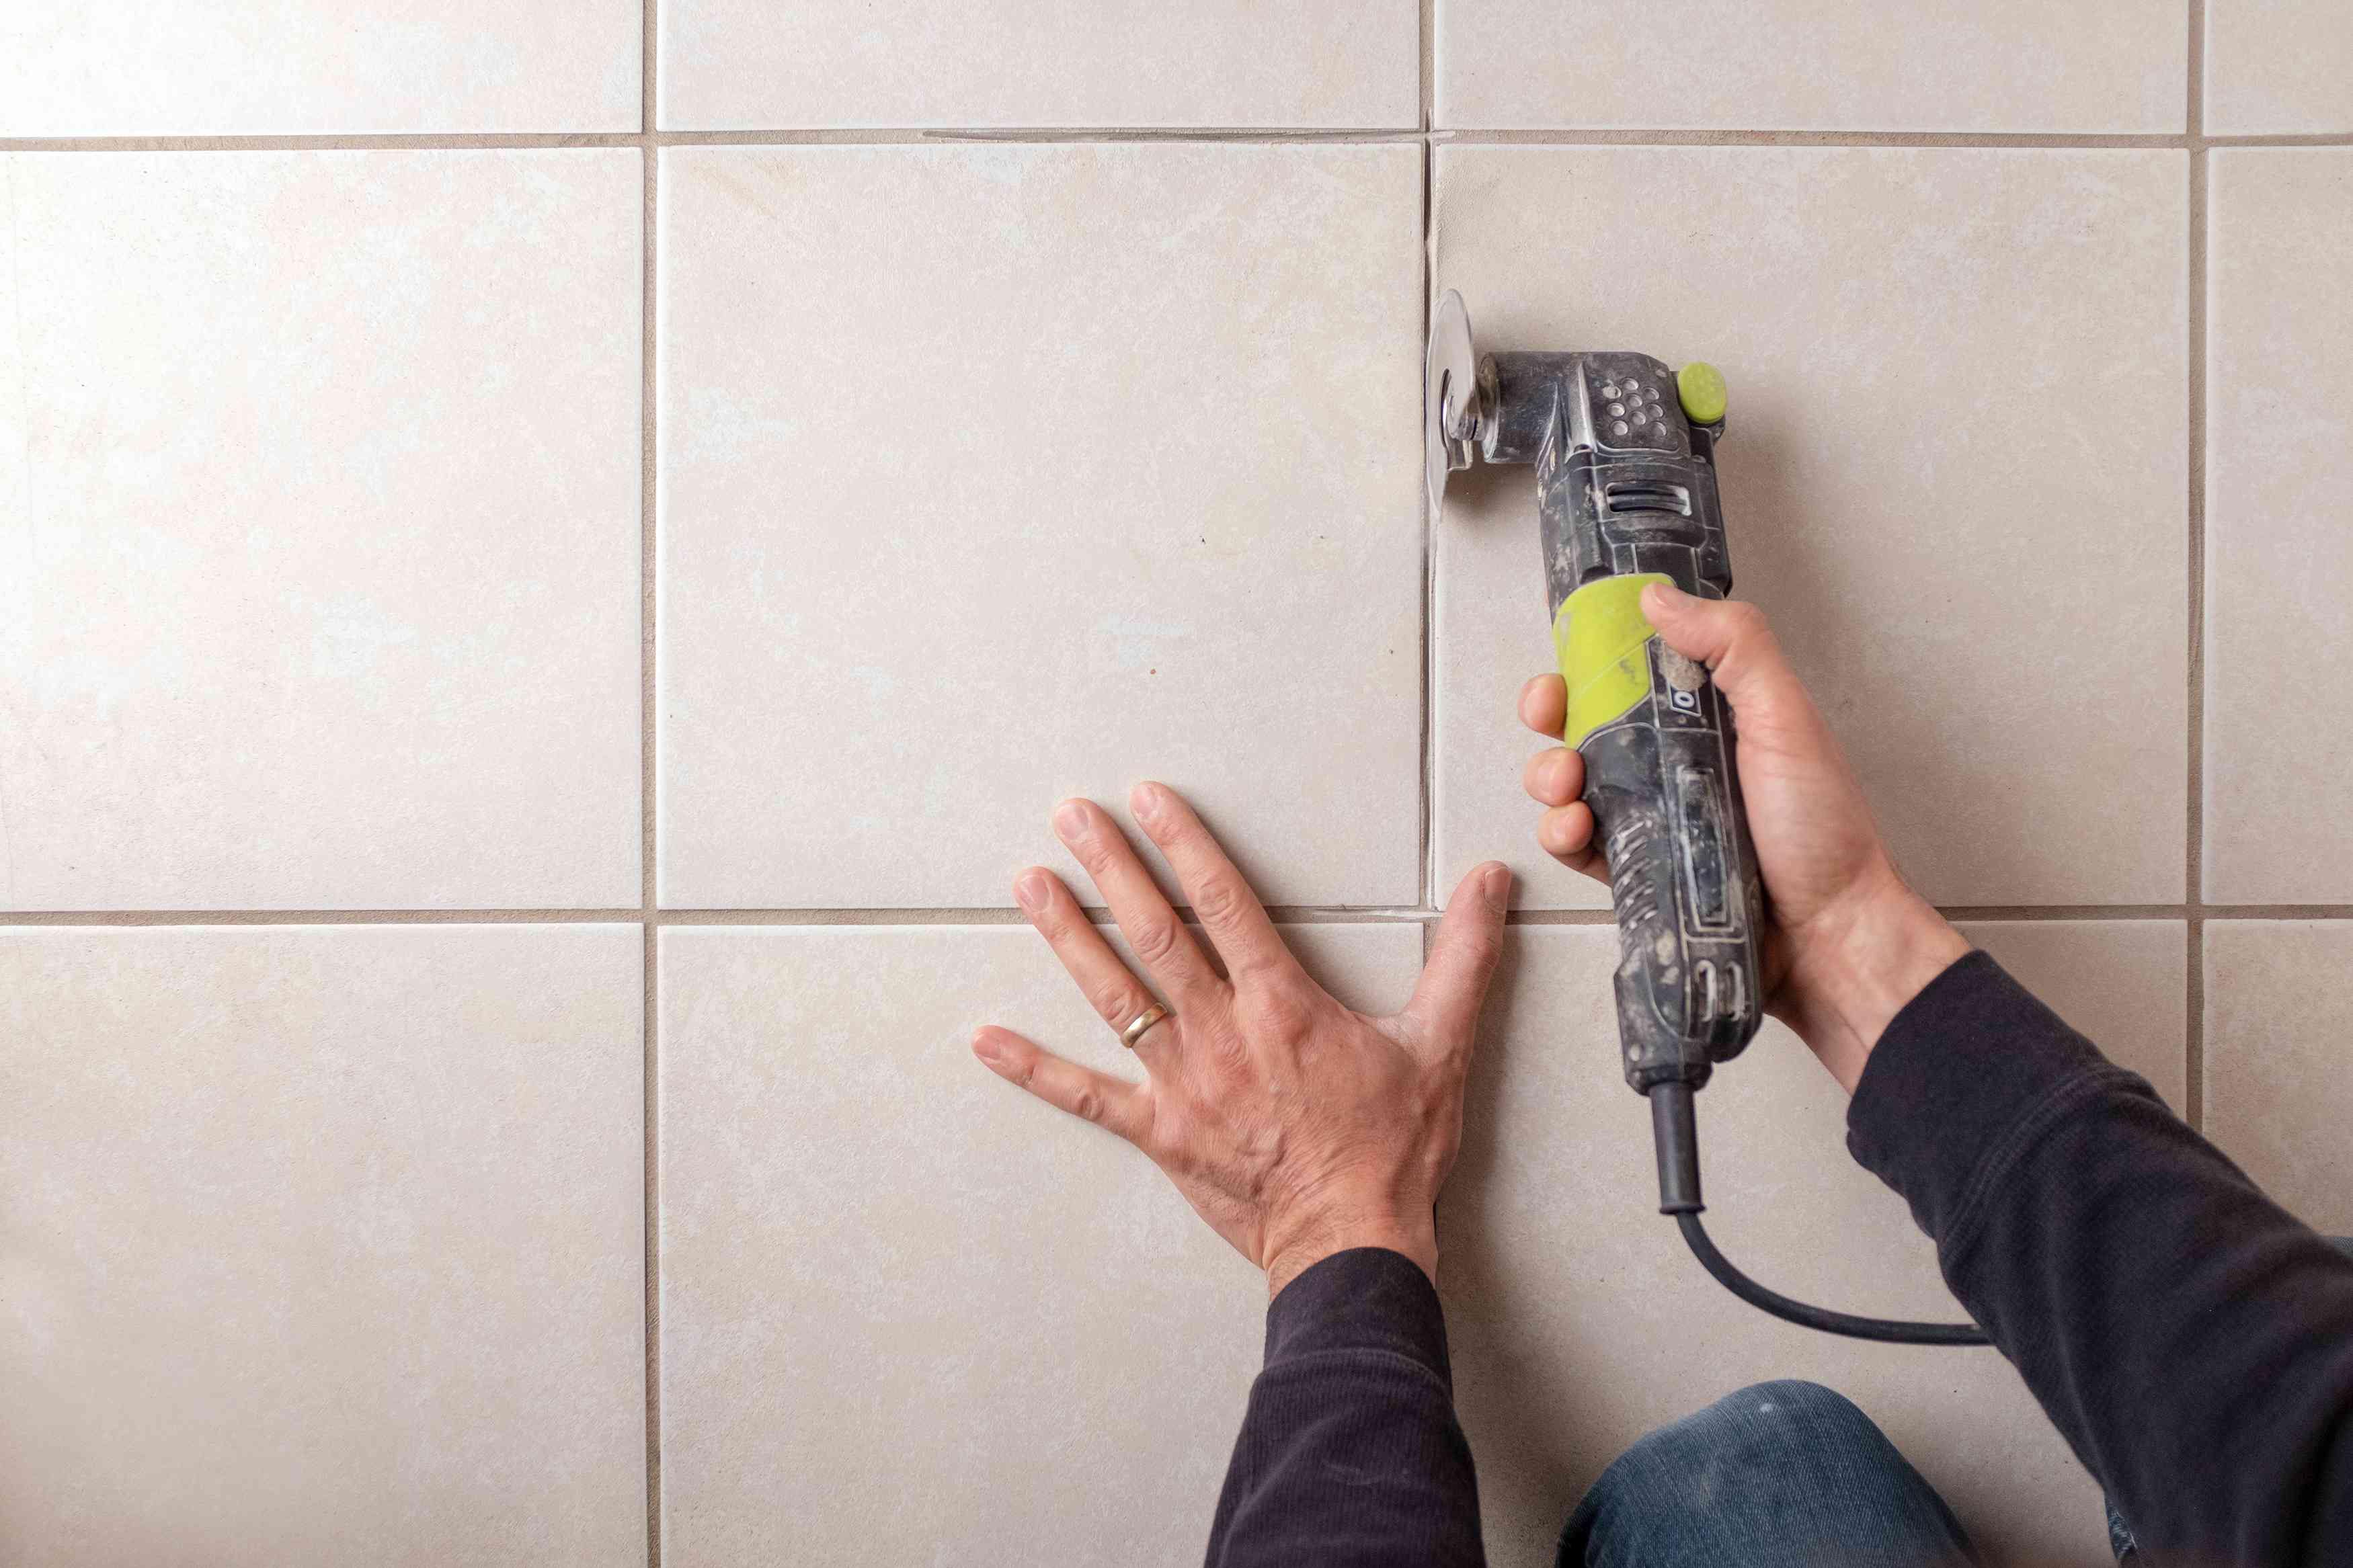 Man using oscillating tool on tile grout